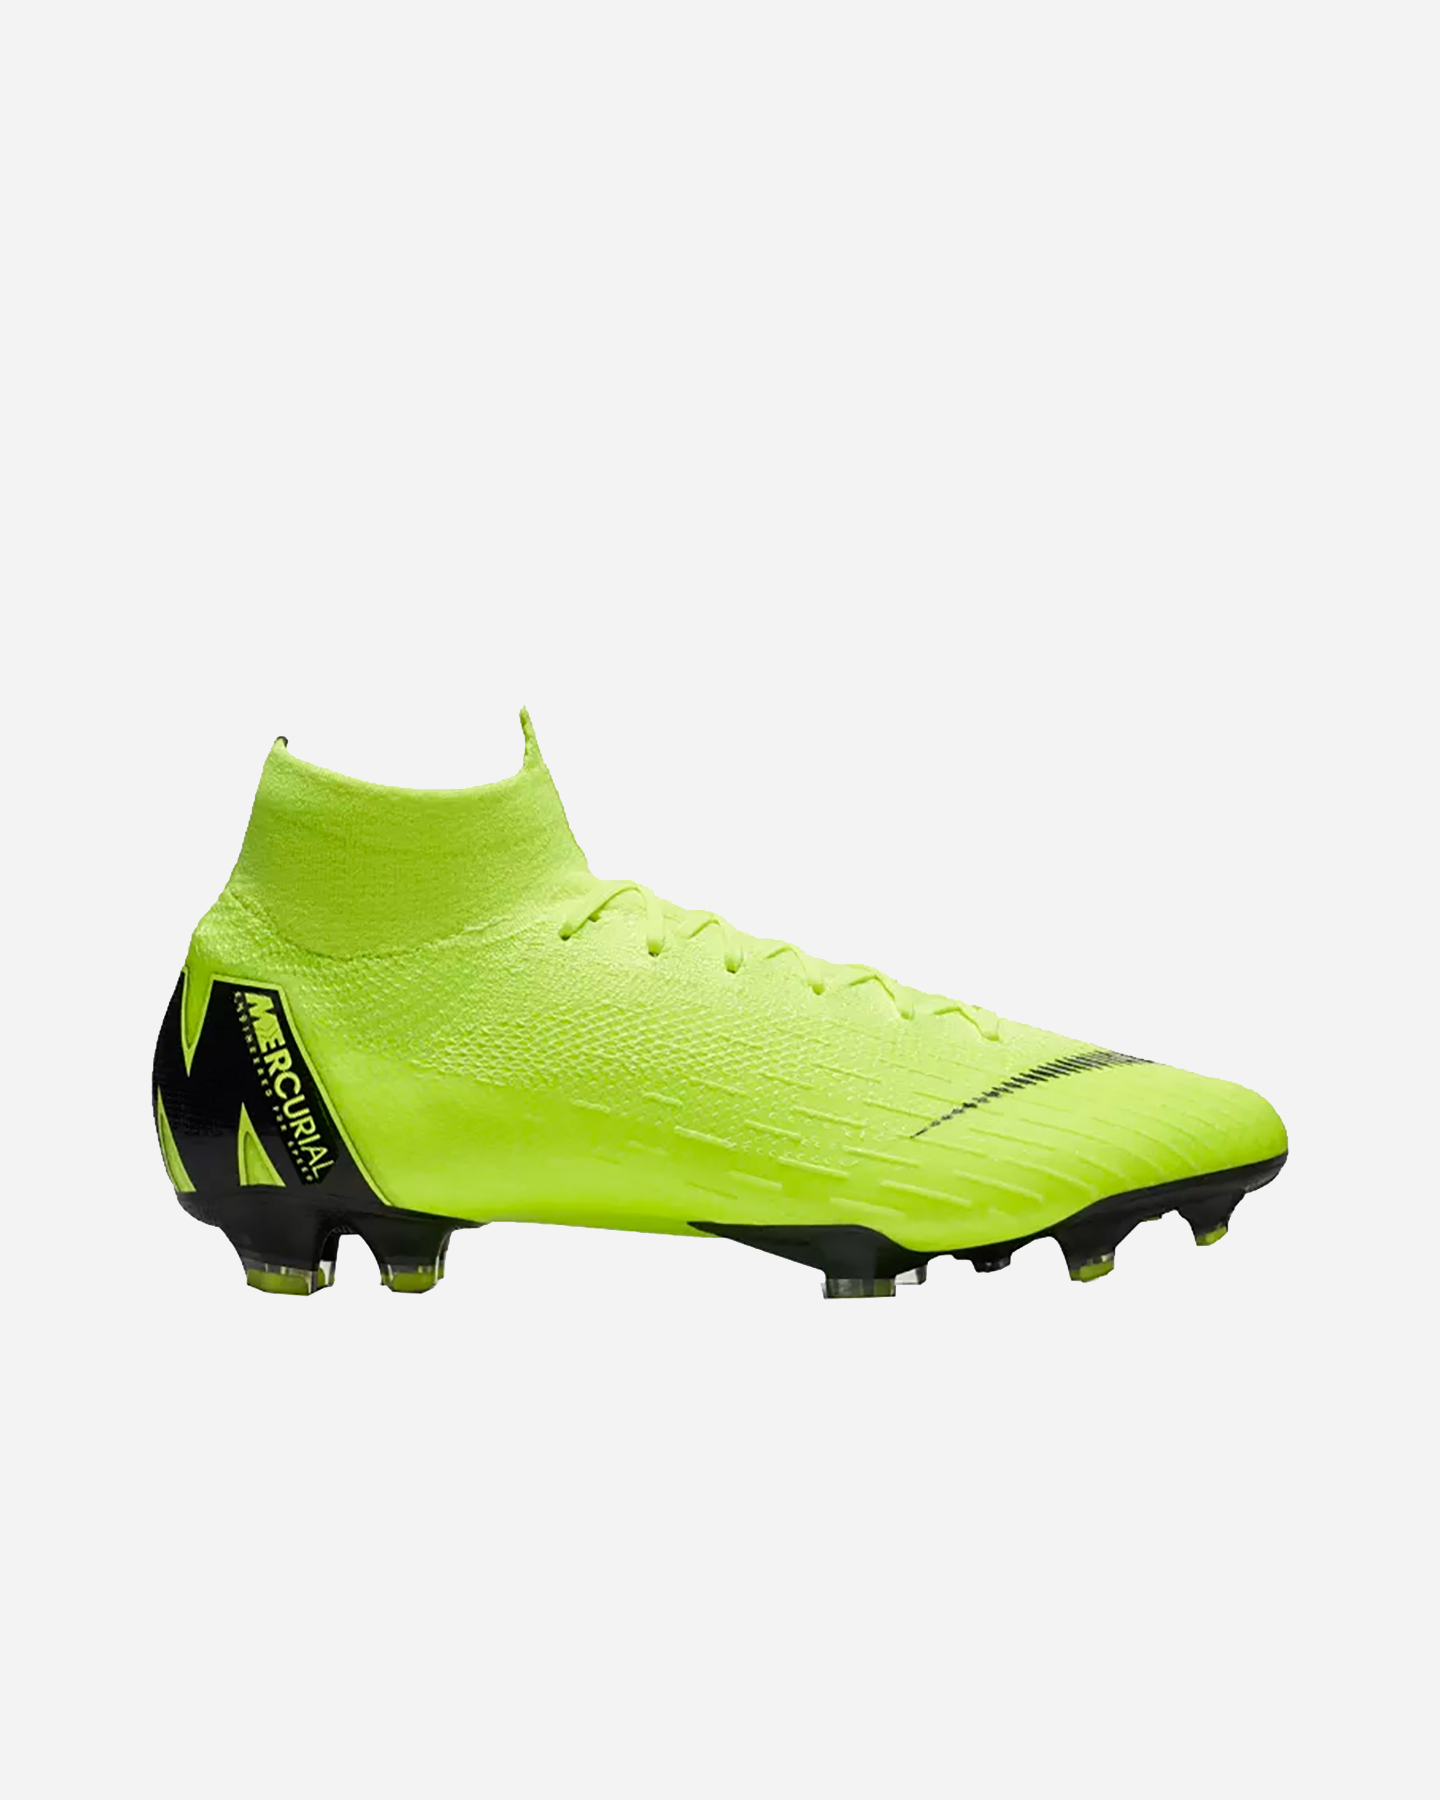 premium selection 711bc 98780 MERCURIAL SUPERFLY 360 ELITE FG M